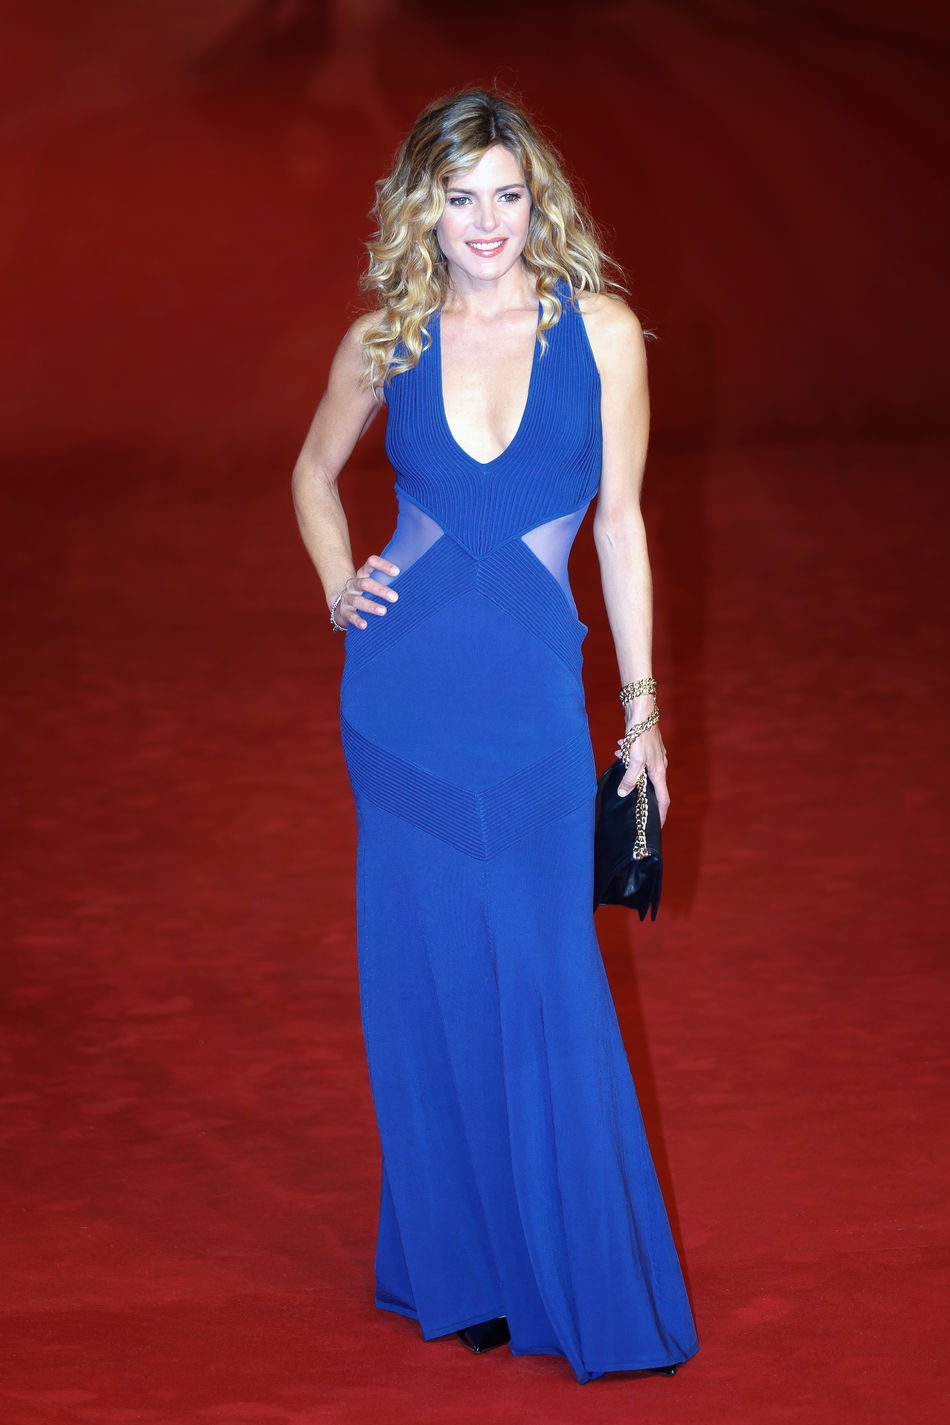 """Rome, Italy - October 13, 2016: Elisabetta Pellini walks a red carpet for """"Moonlight"""". Actress Adults Only Blonde Girl Blonde Hair Cinema Elisabetta Pellini Ff11 One Person One Woman Only One Young Woman Only Only Women Pellini Portrait Red Background Red Carpet Event Rome Film Fest"""